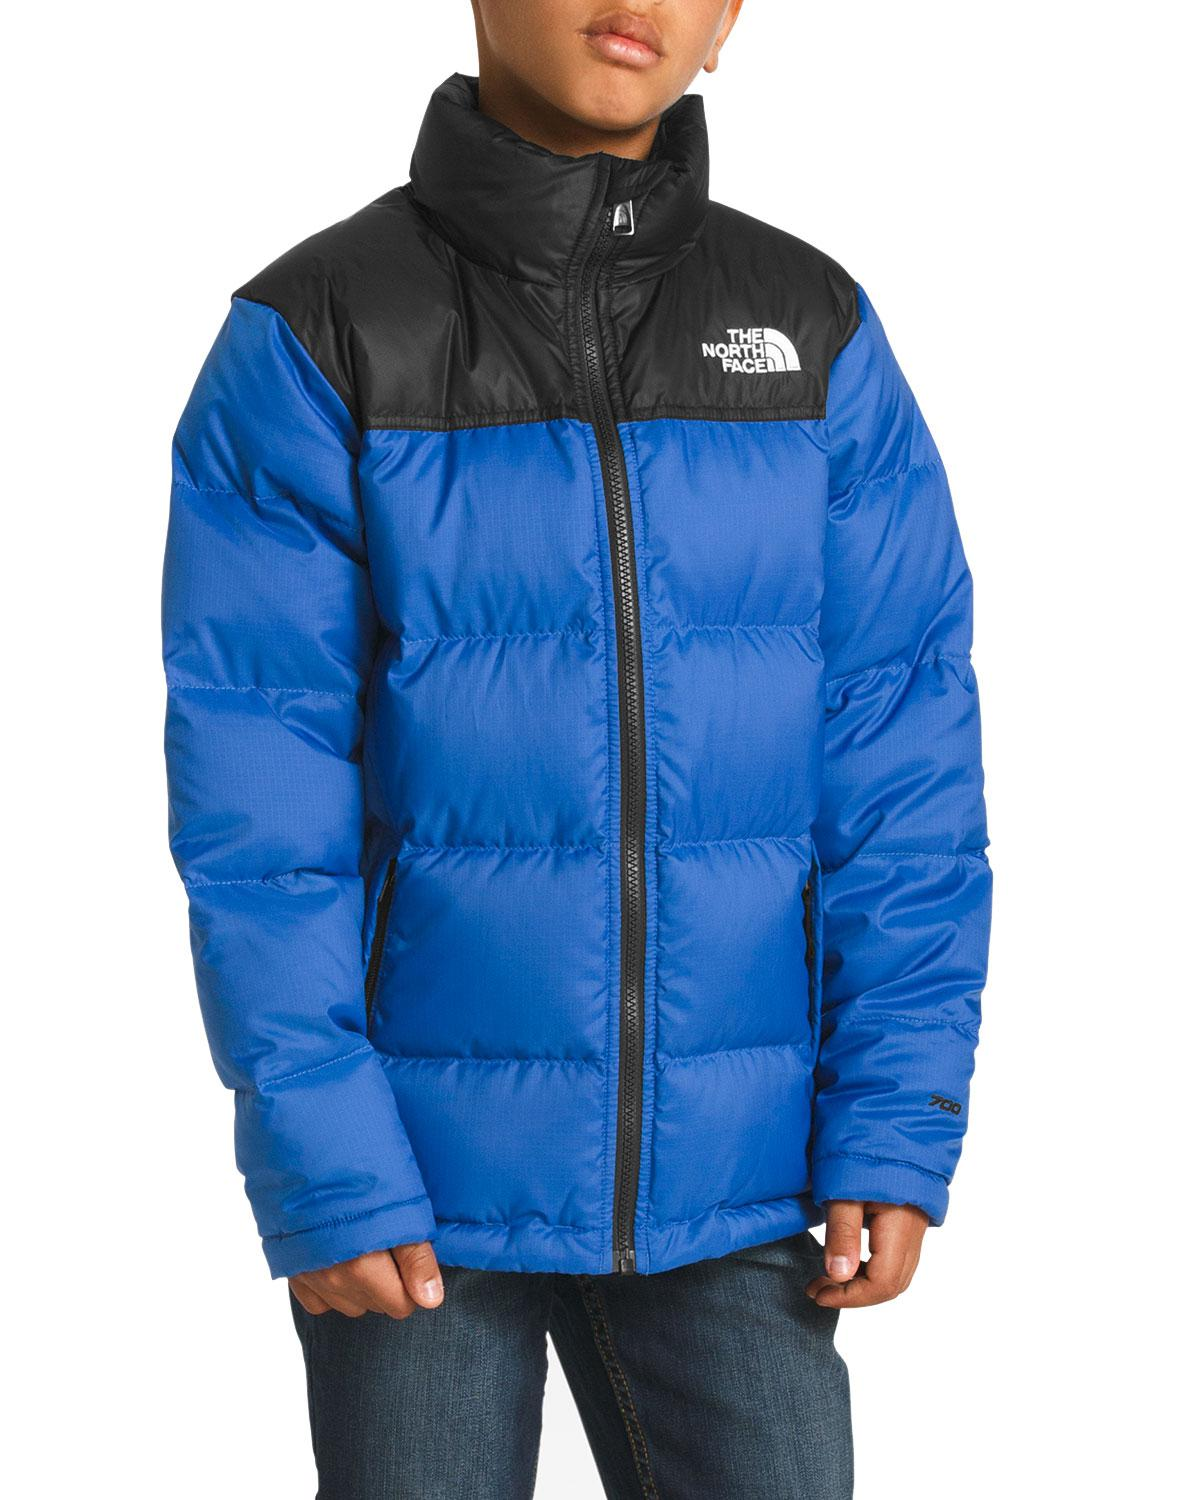 reduced lyst the north face novelty nuptse jacket in navy in